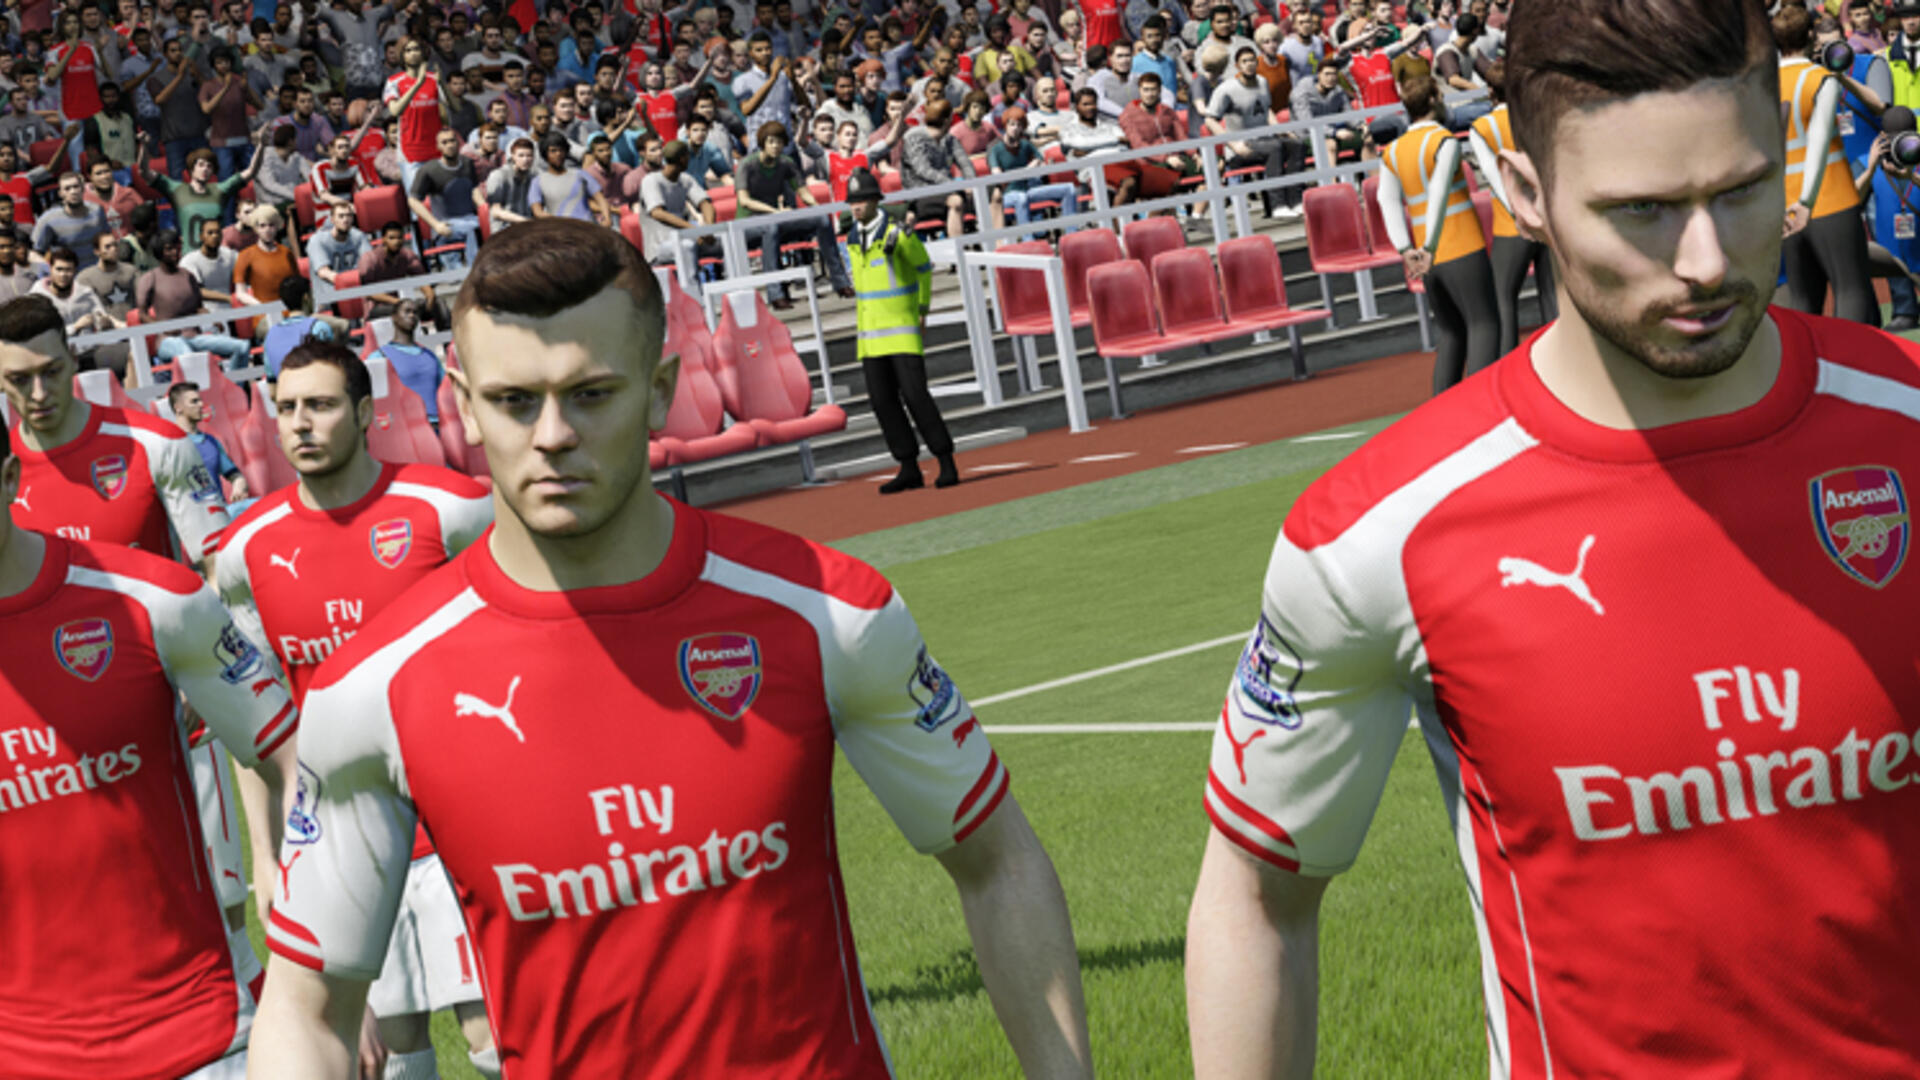 FIFA 15 Strategy Guide: Goal Scoring Tips, Winning Ways to Take a Penalty, Best Young Players to Target in Career Mode